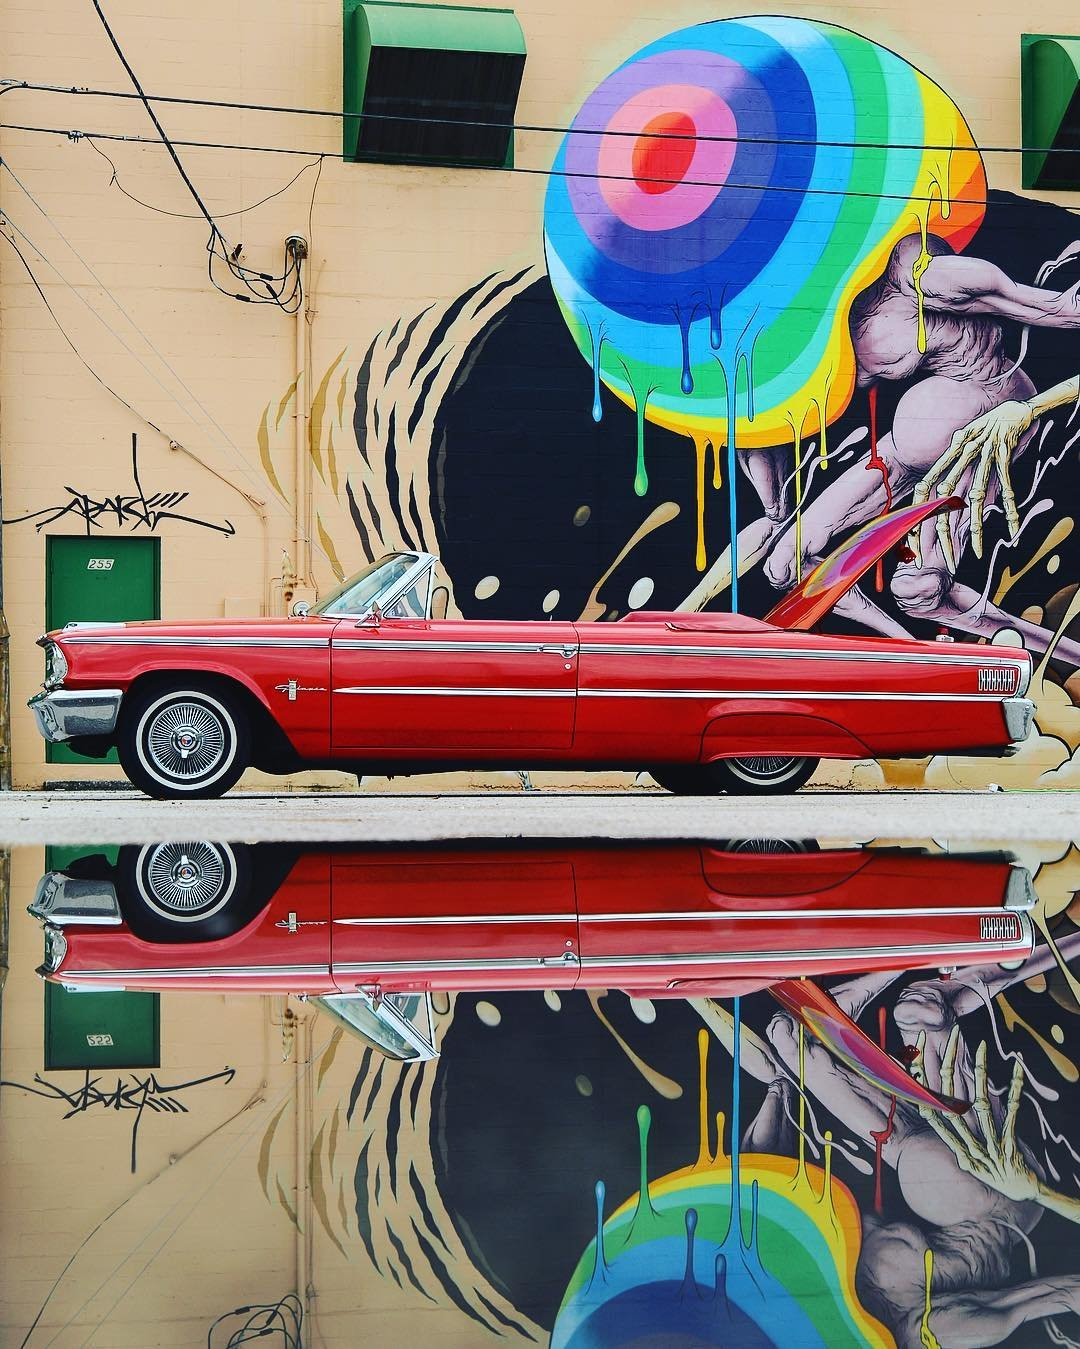 When art imitates life... Mural by: @alexpardee Ford Galaxie 500: @goodandshiddy #shineonstpete #puddlegram